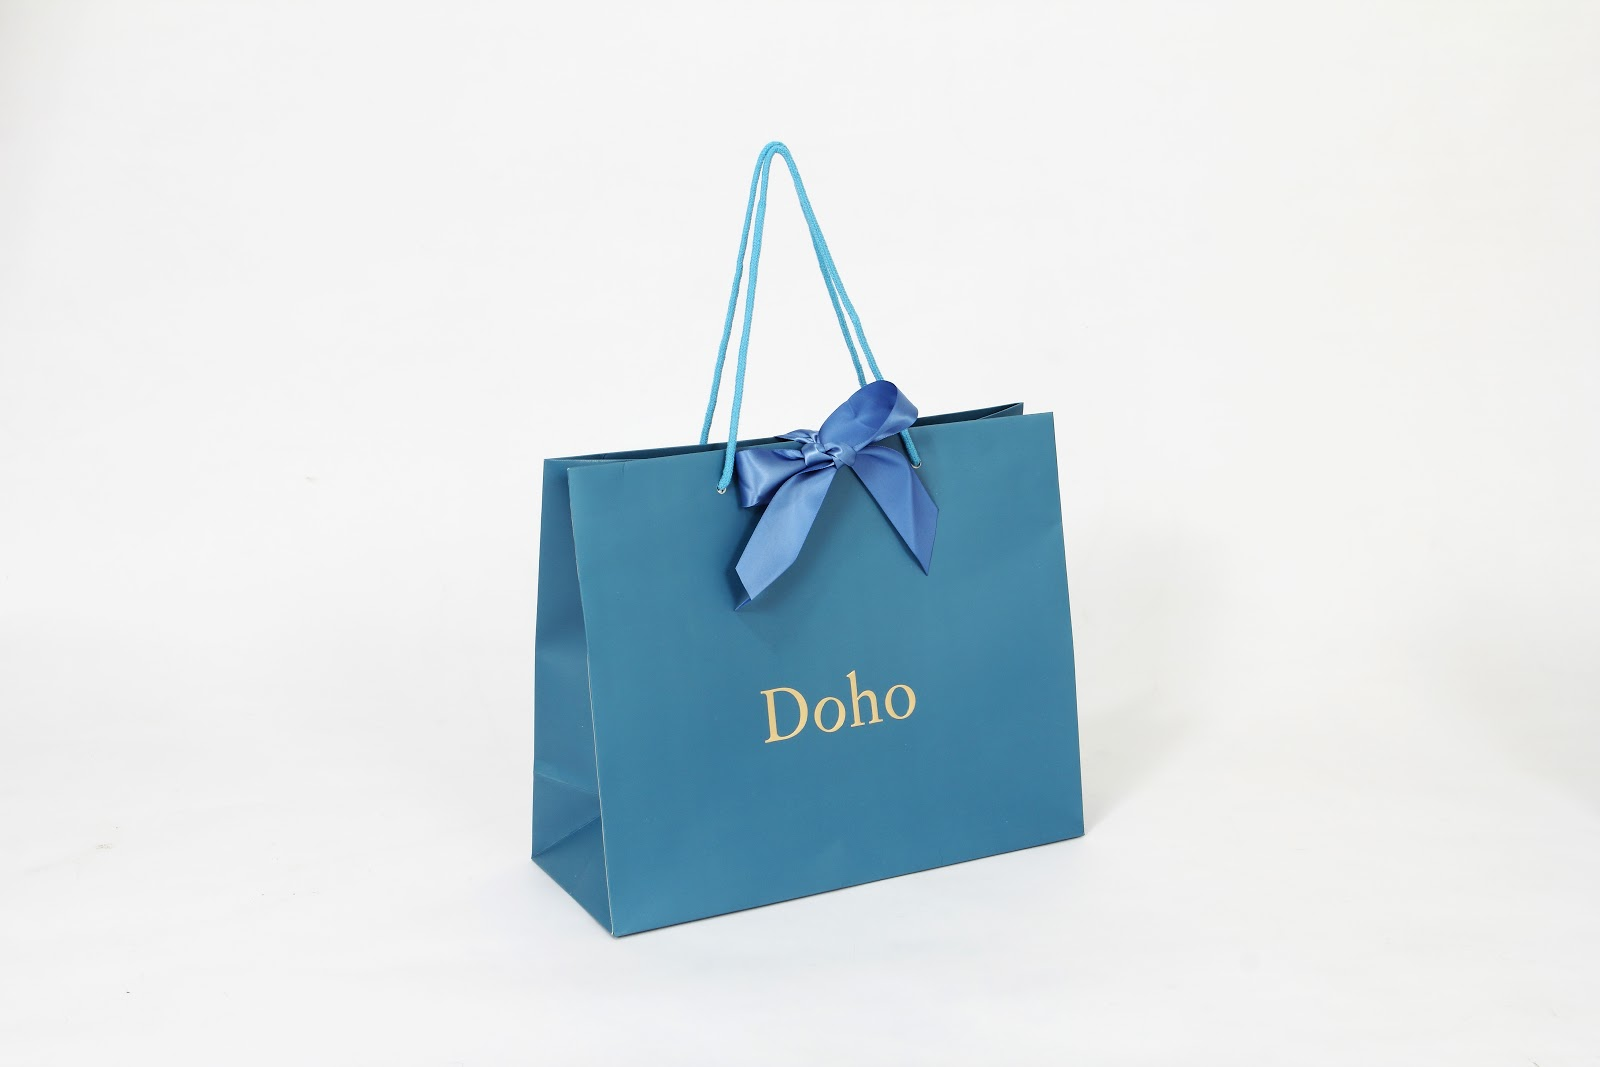 branded shopping bags images - photo #7